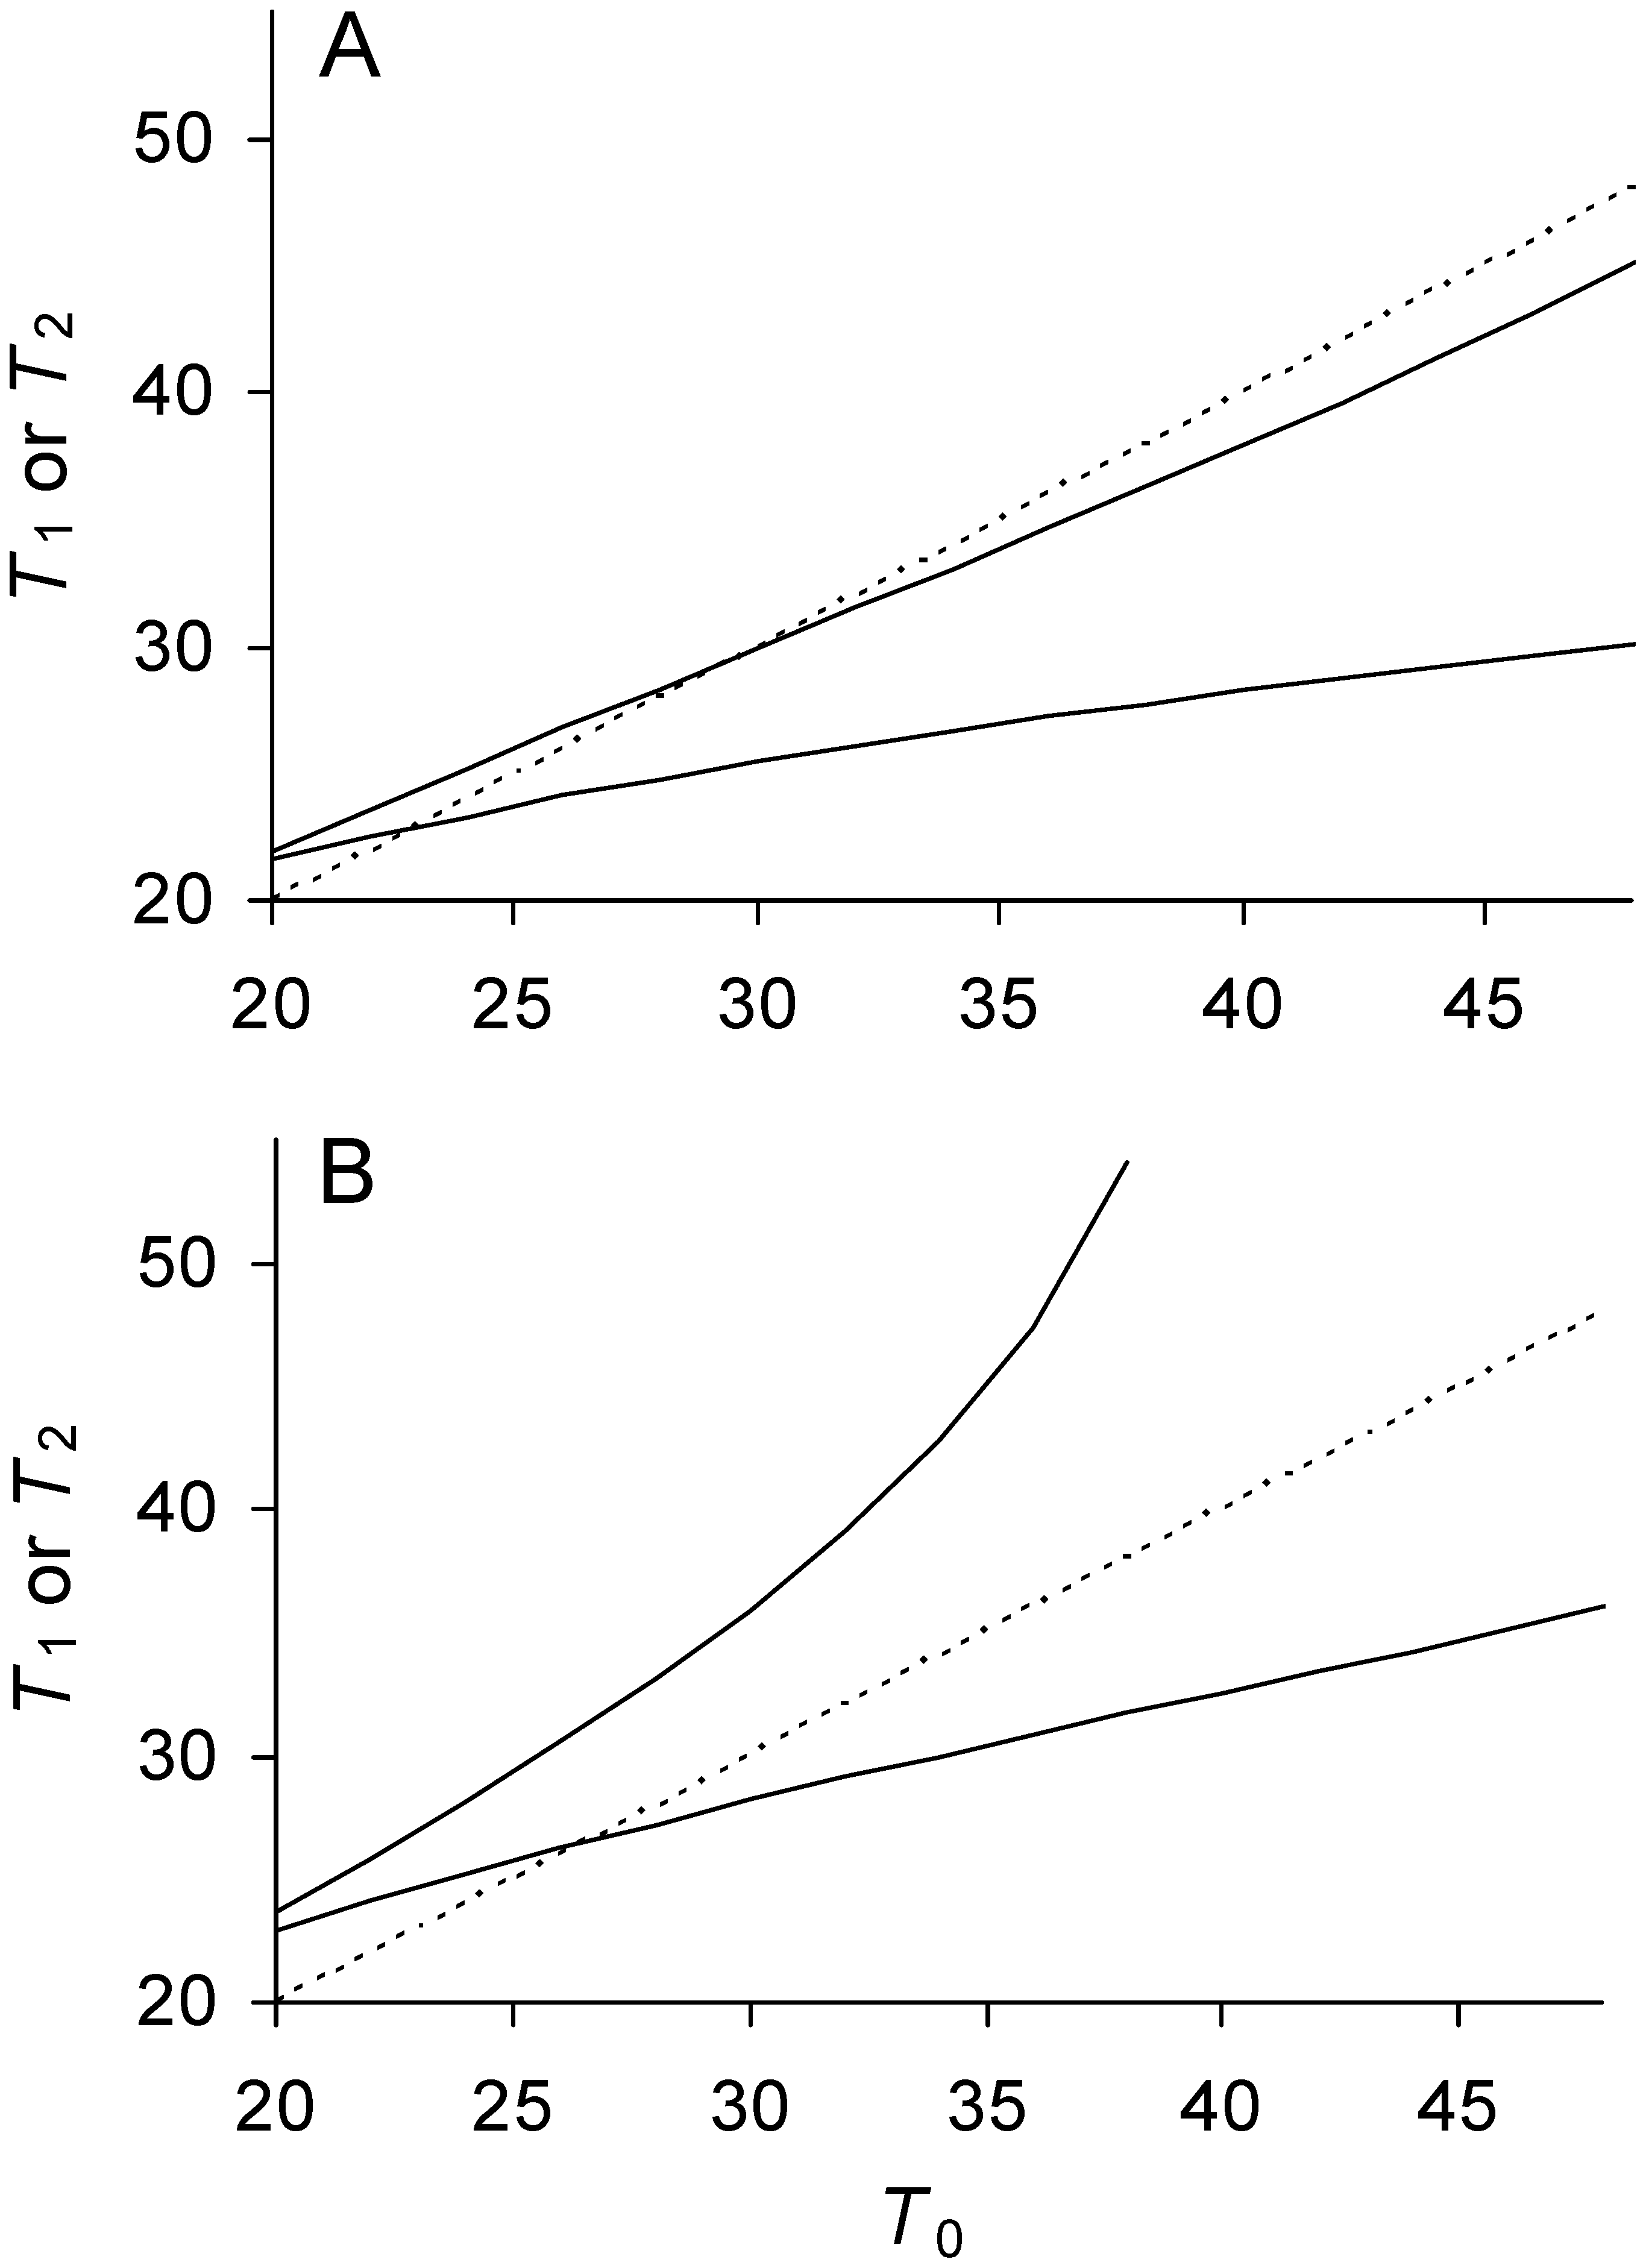 Relationship between doubling times of daughter and mother cells when division is asymmetrical.